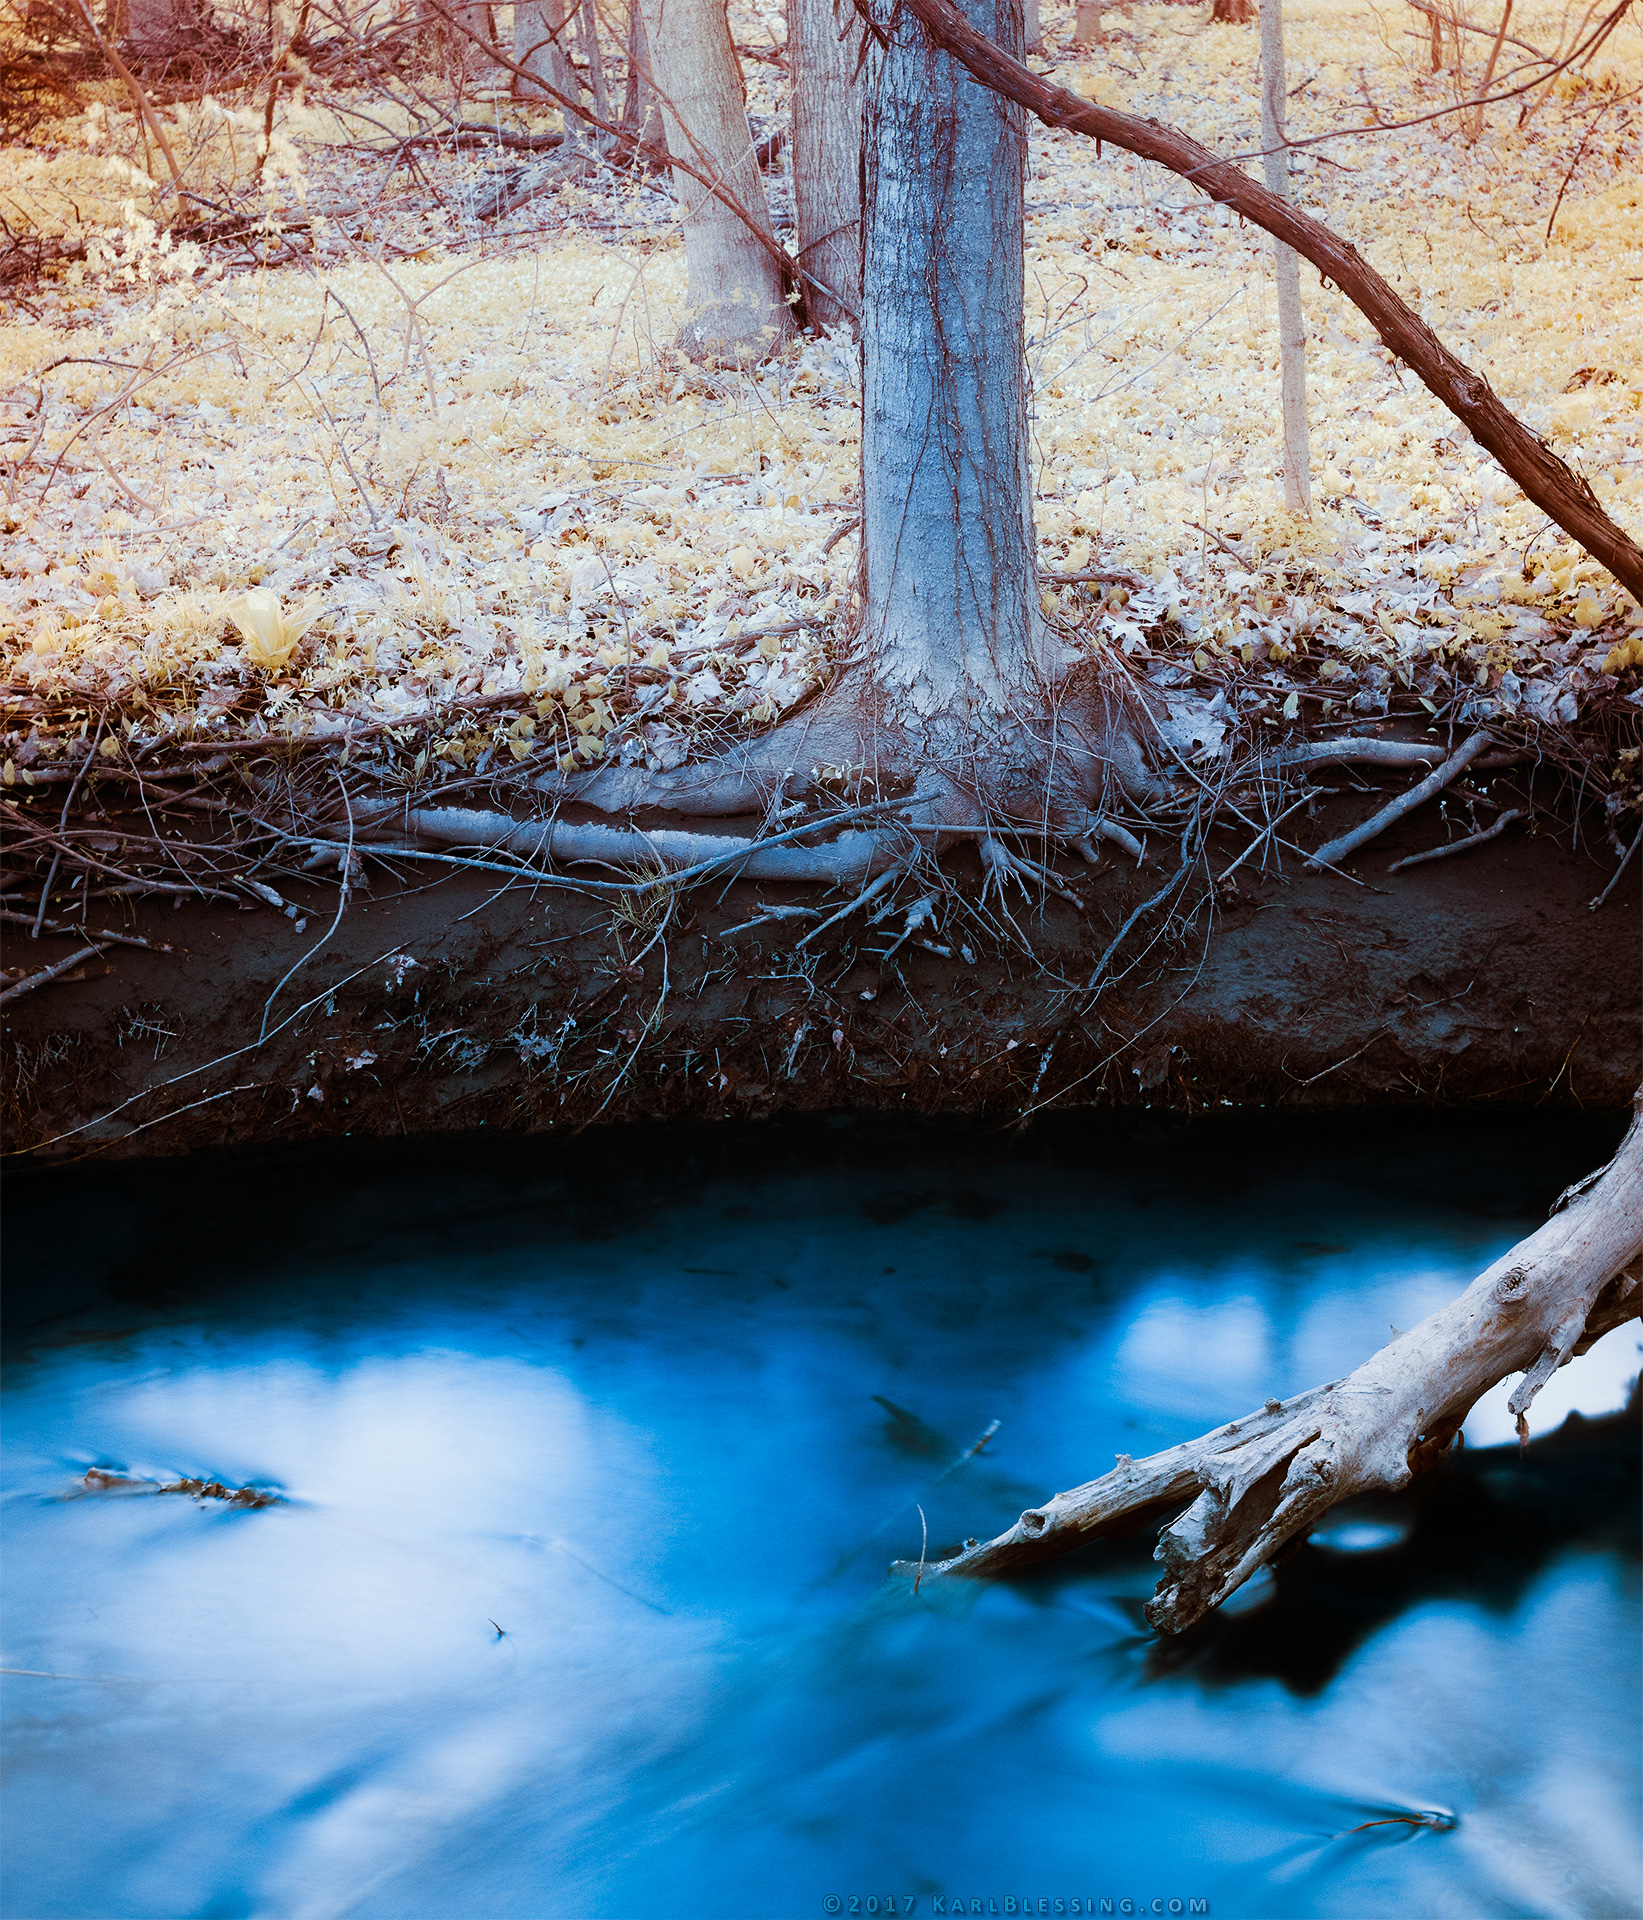 Rooted in a Creek